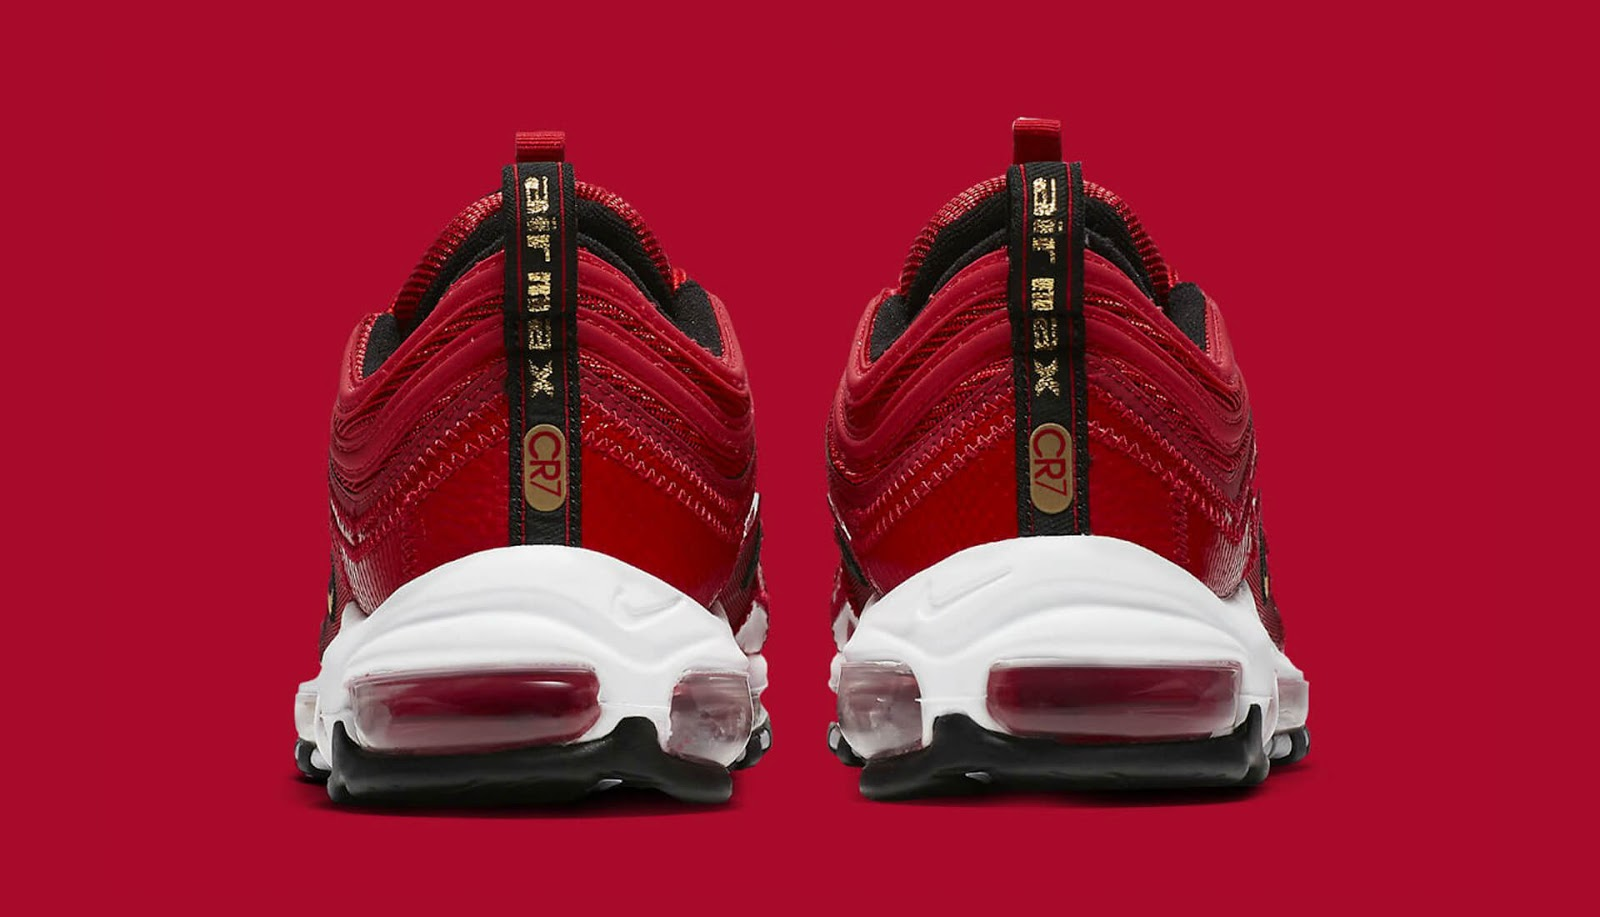 0be6307173 Do you like the red edition of the Nike Air Max 97 CR7 sneakers? Let us  know in the comments below.